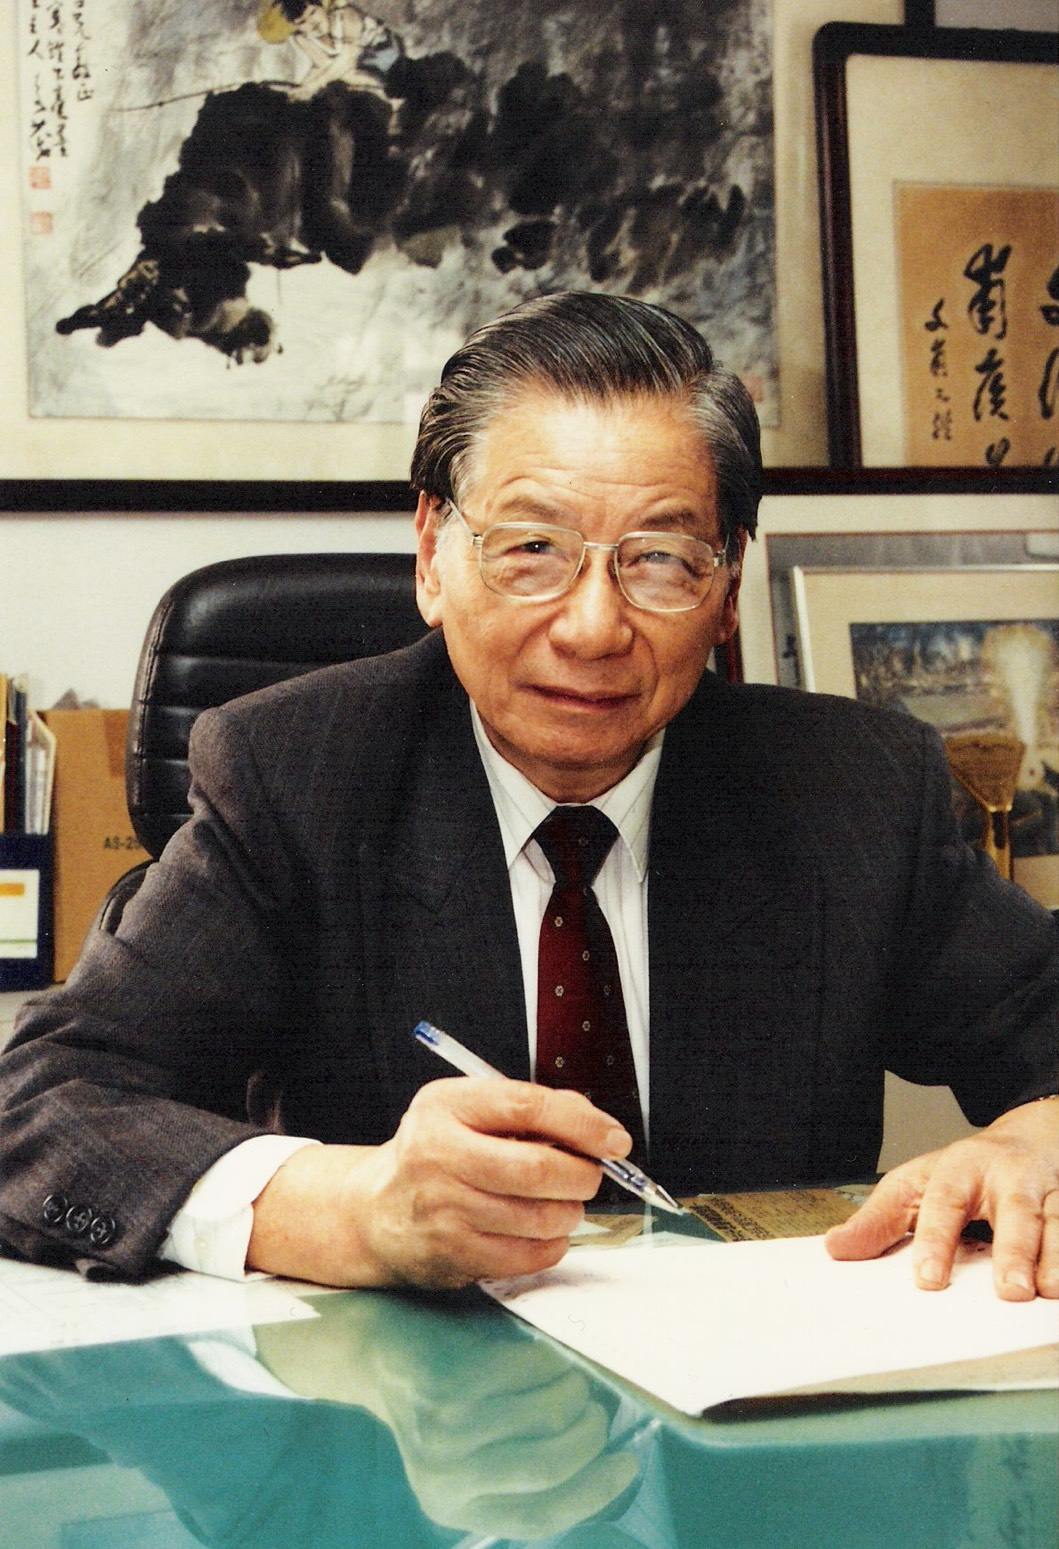 Culture Minister laments the passing of dedicated publisher Tsai Wen-fu